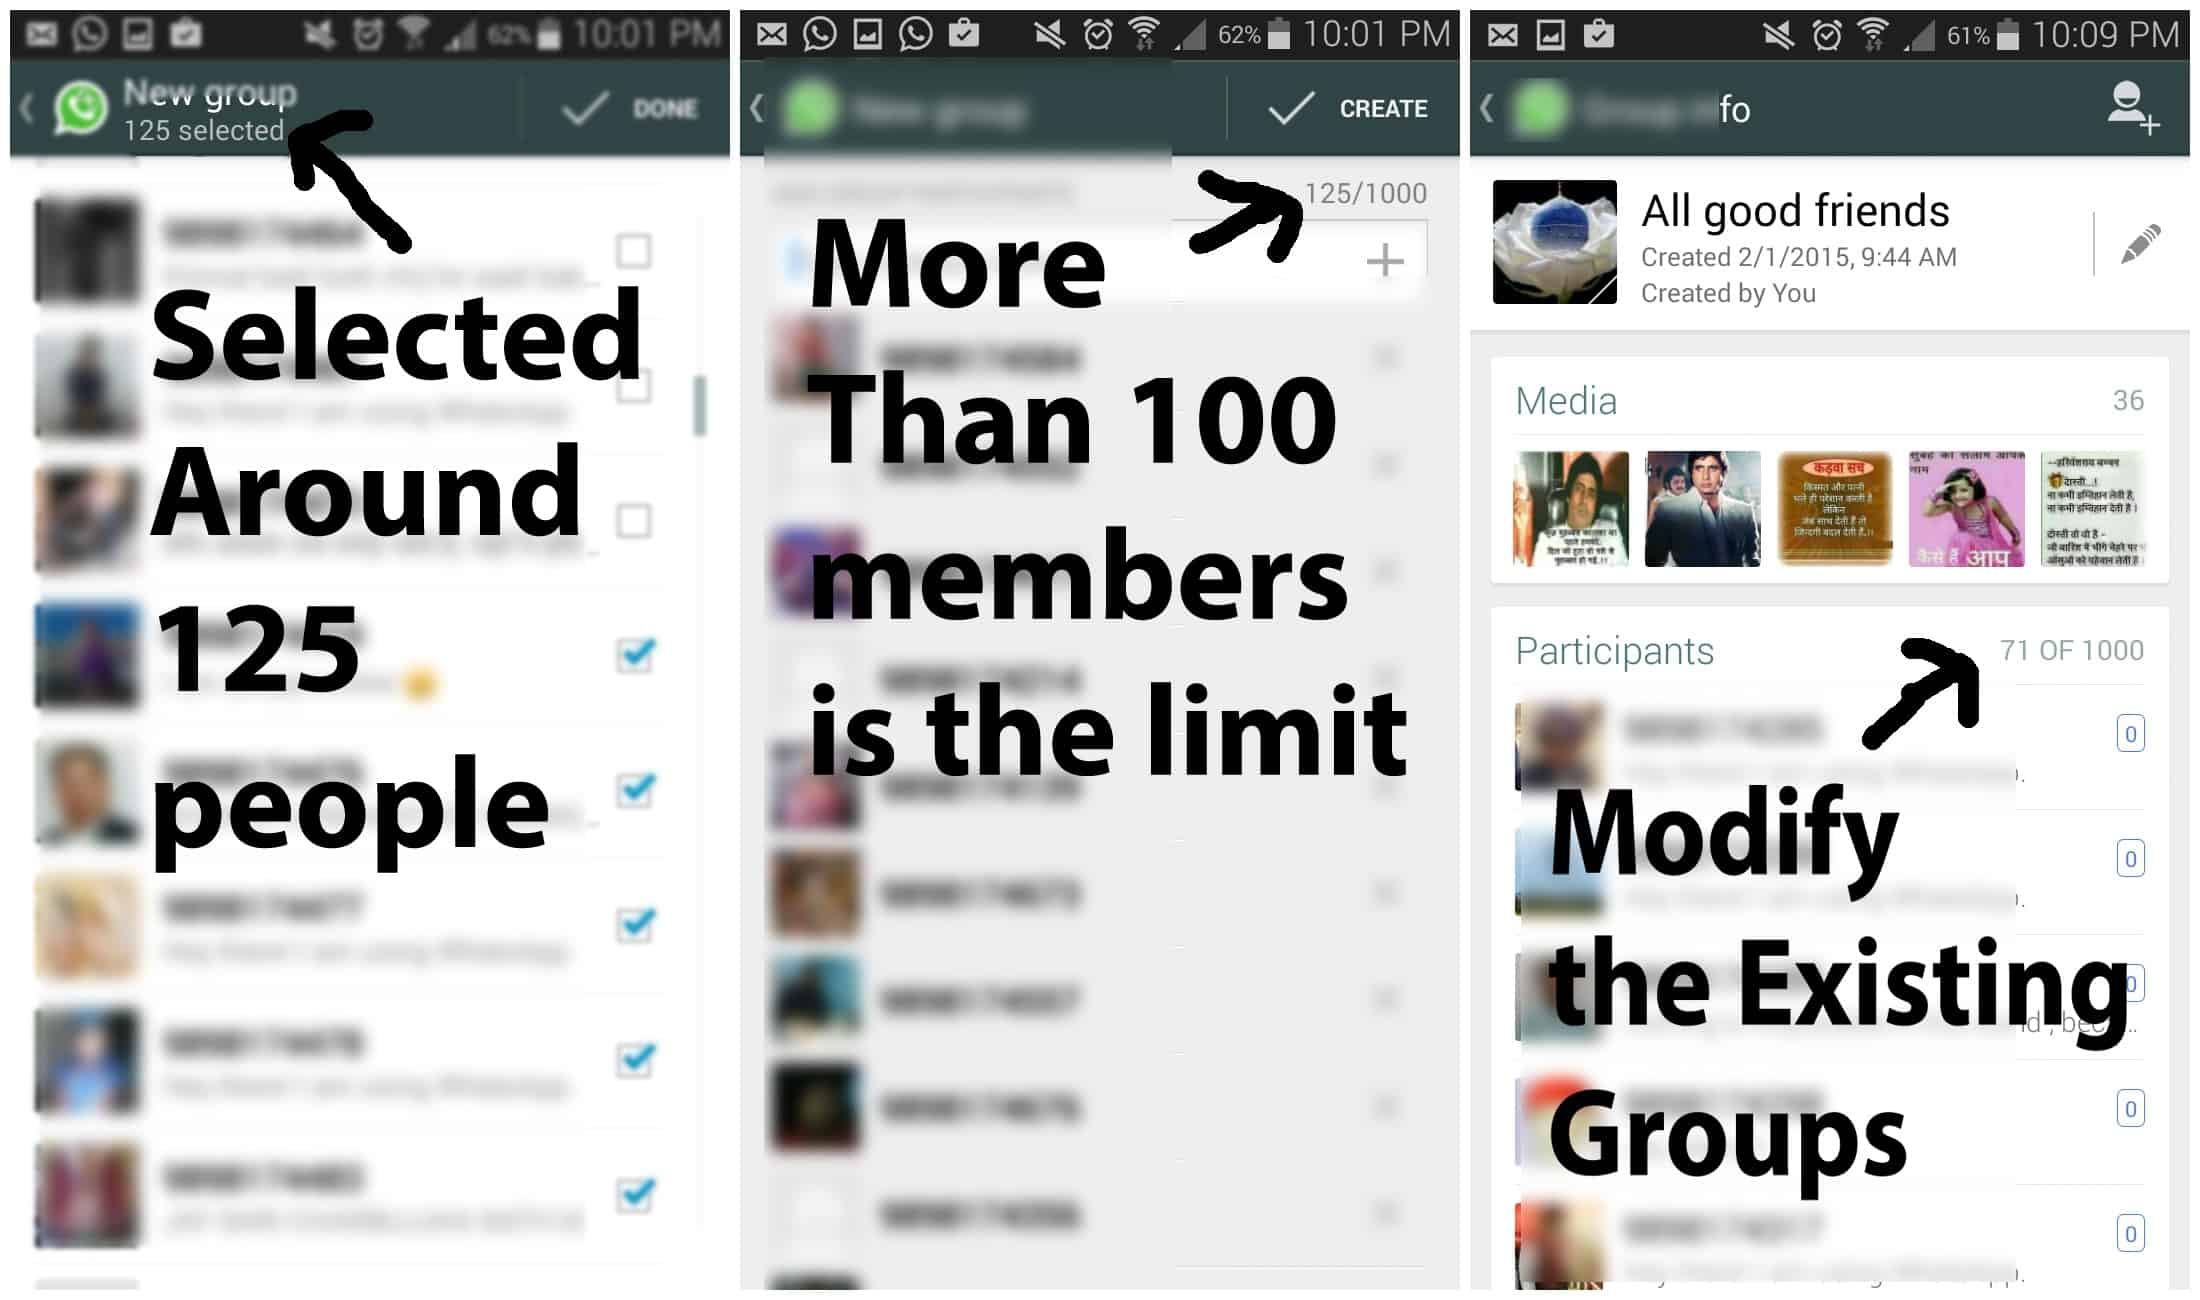 How to Add More than 100 Members in Whatsapp Group 1